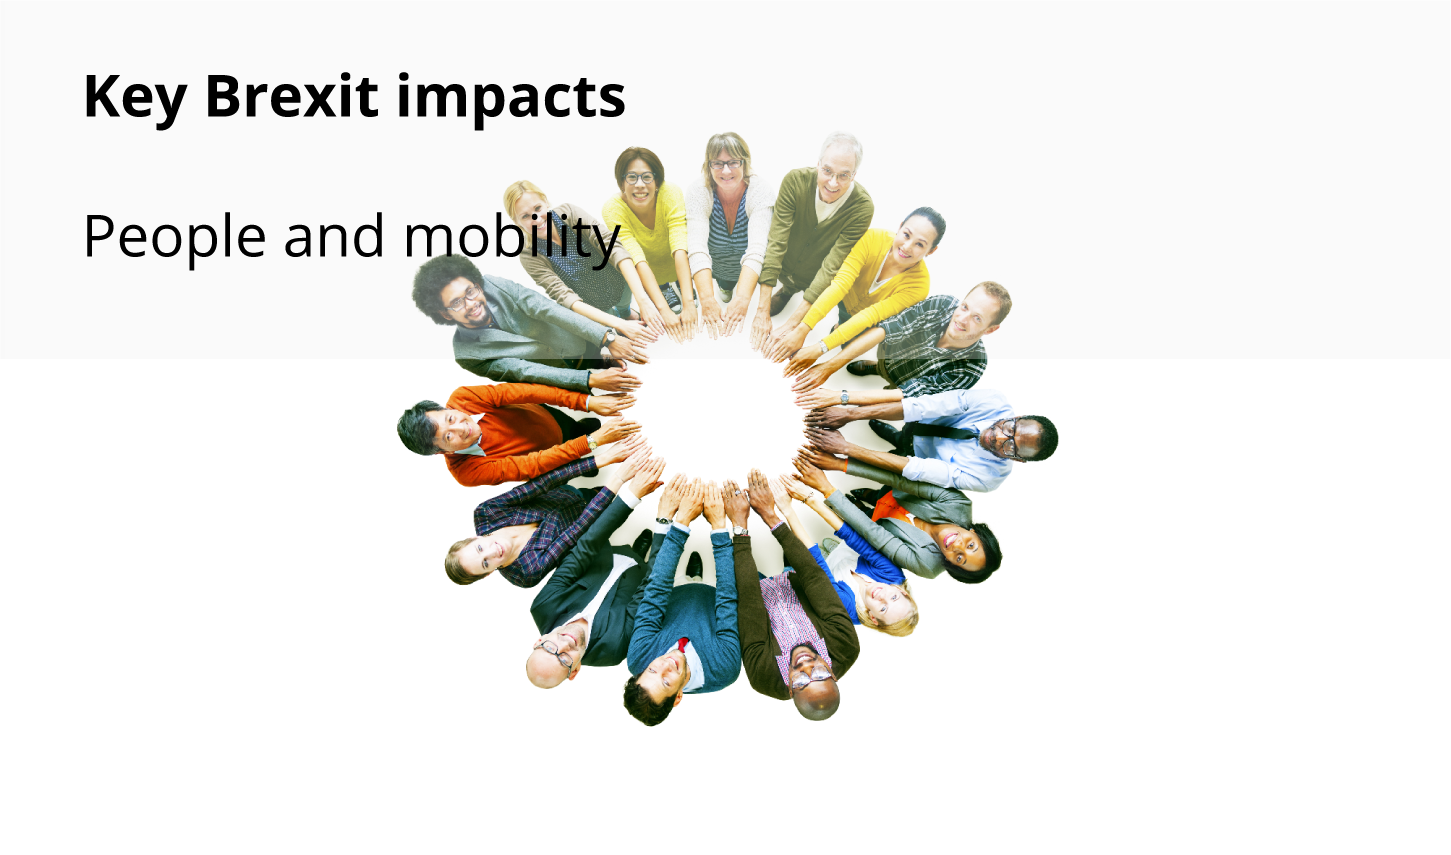 Key Brexit impacts: People and mobility